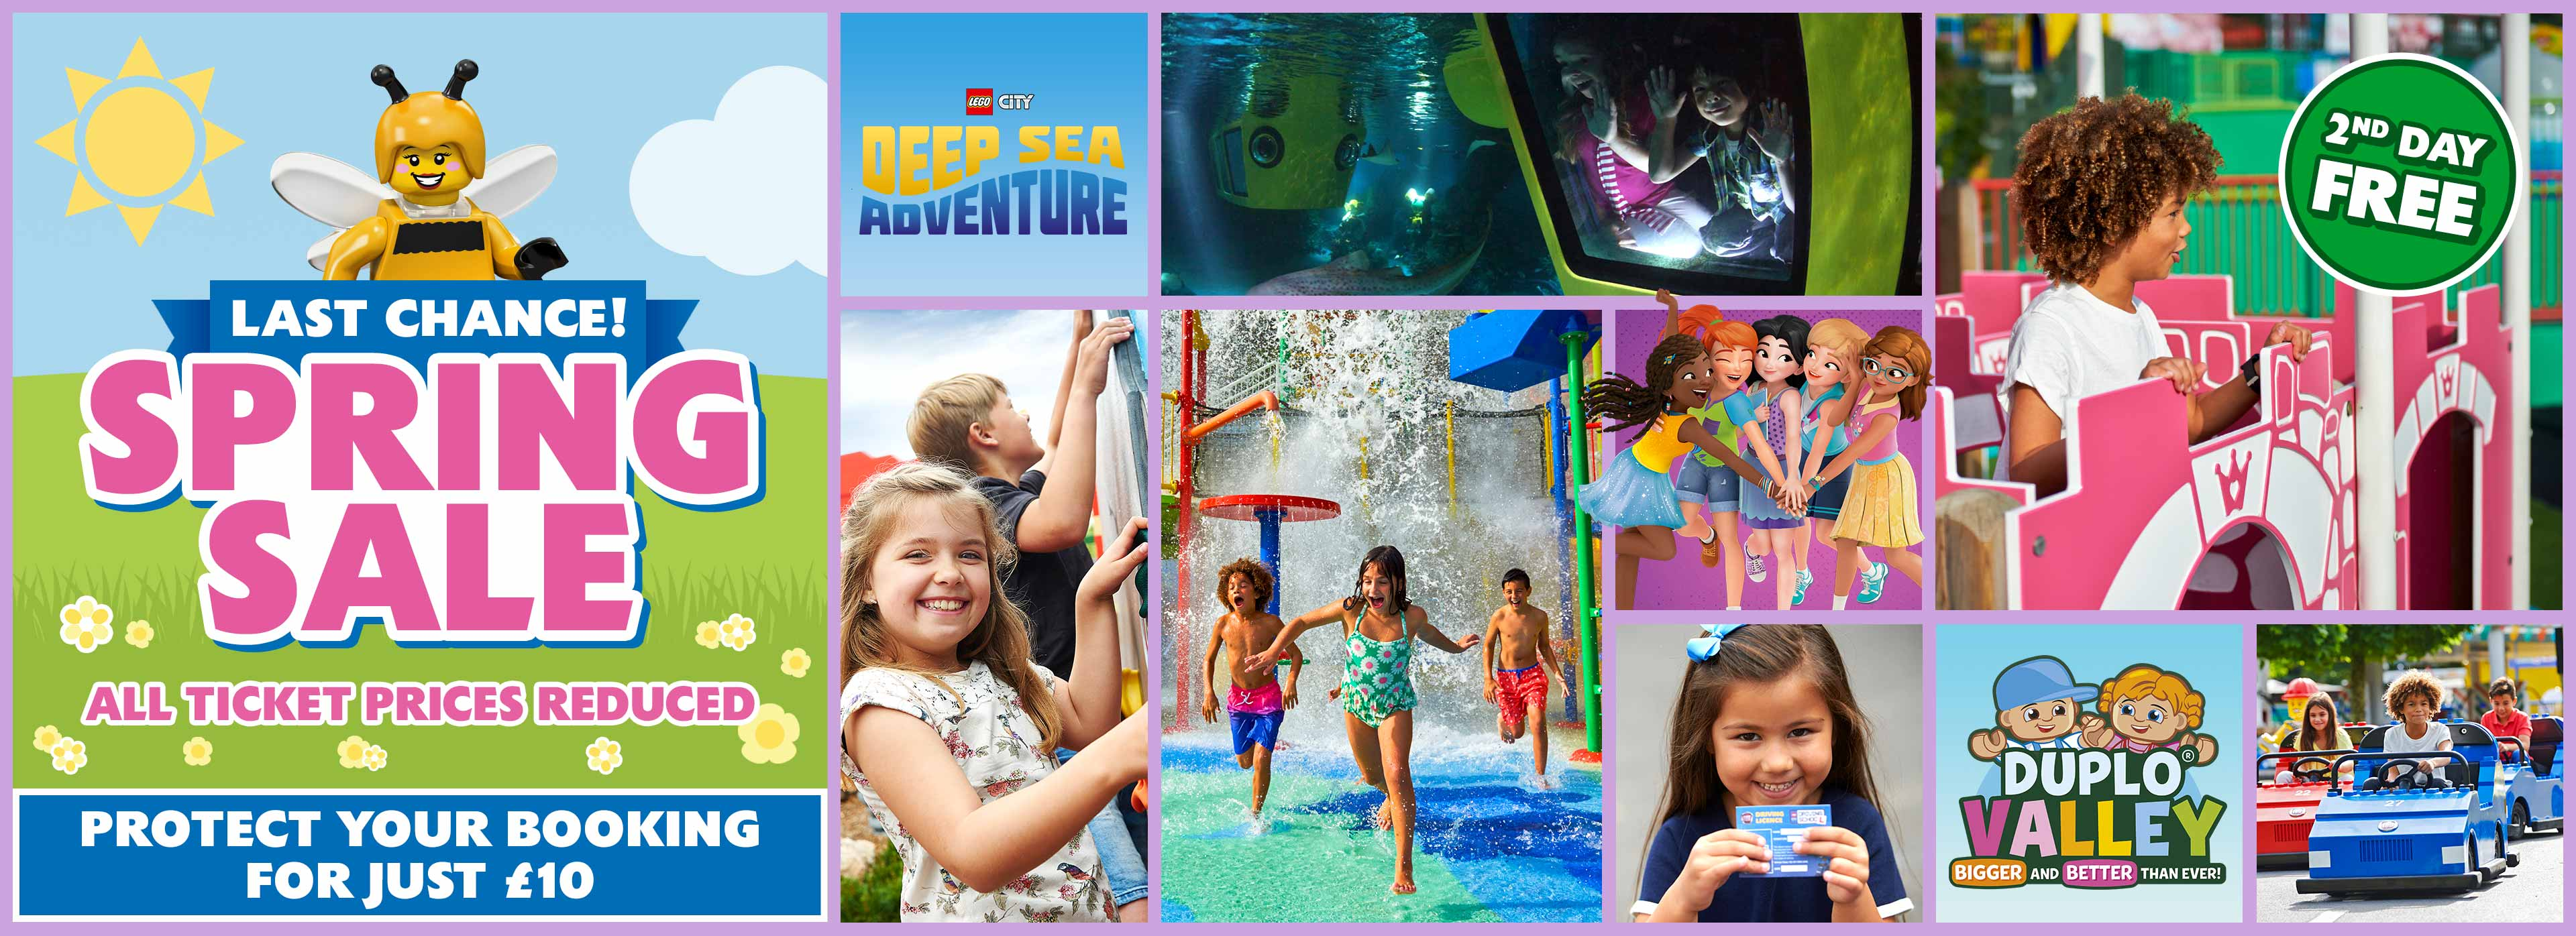 Spring Sale! Ticket prices reduced on All dates with LEGOLAND Holidays